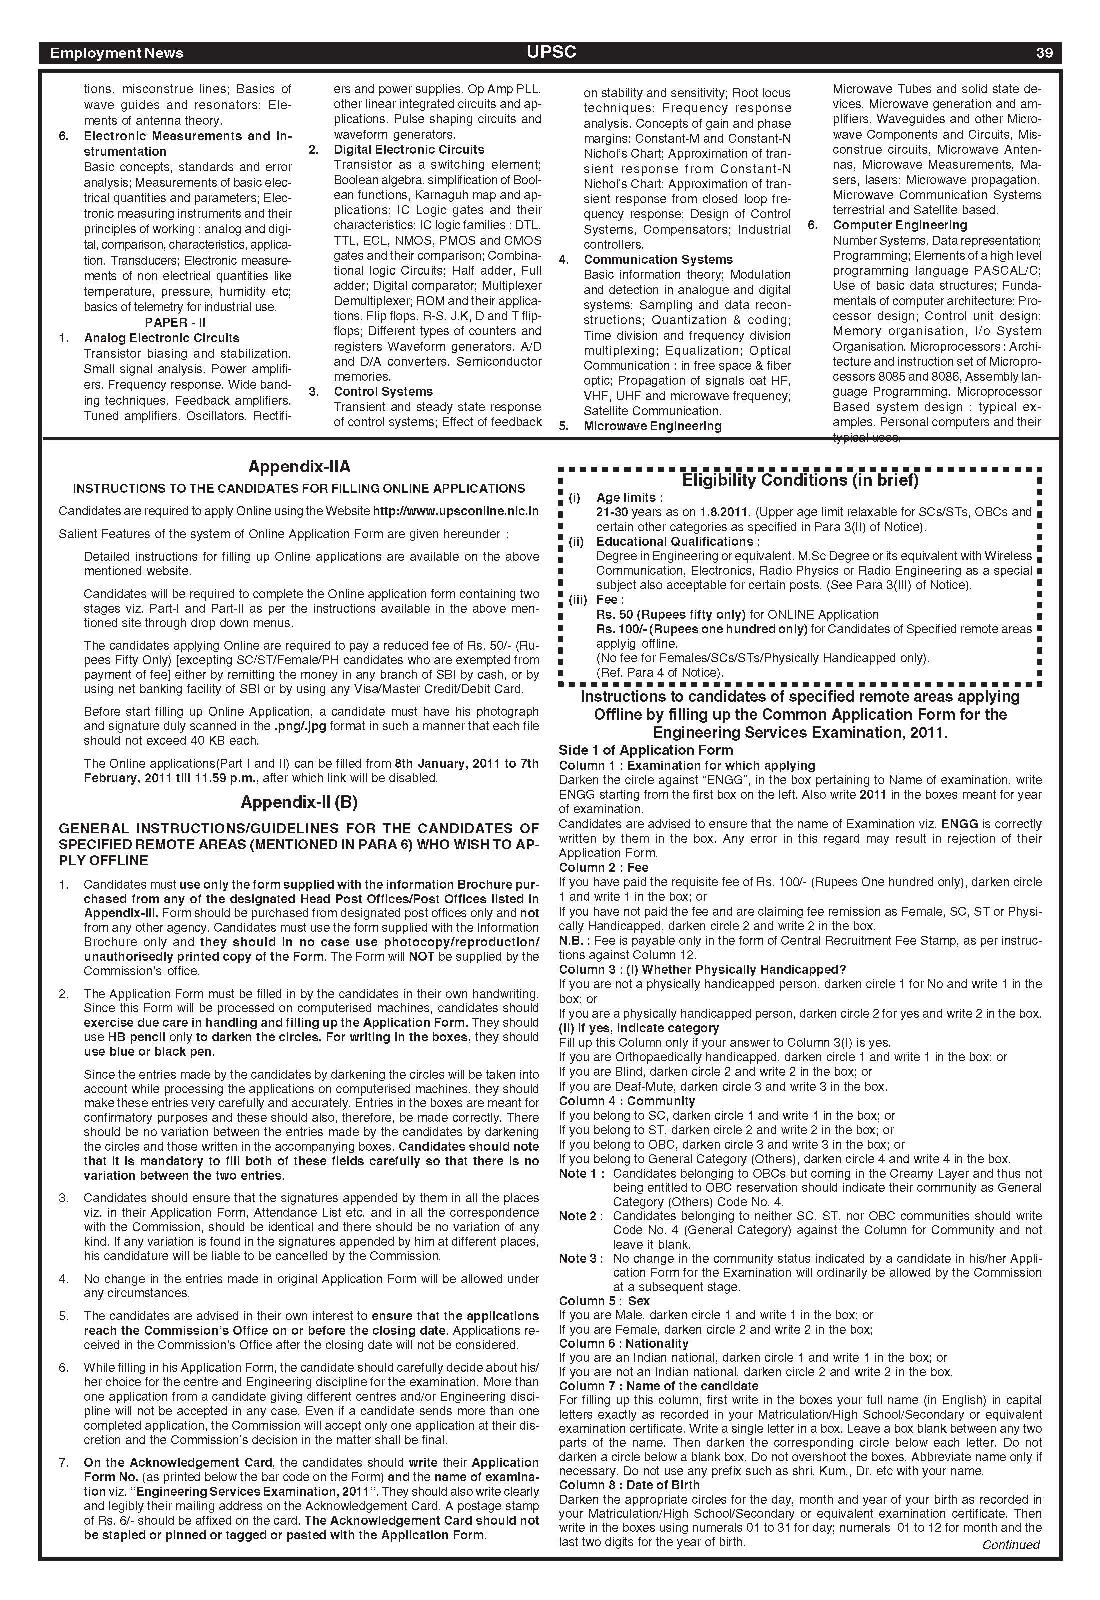 Govt Jobs 2017 - Latest Central and State Government Jobs India